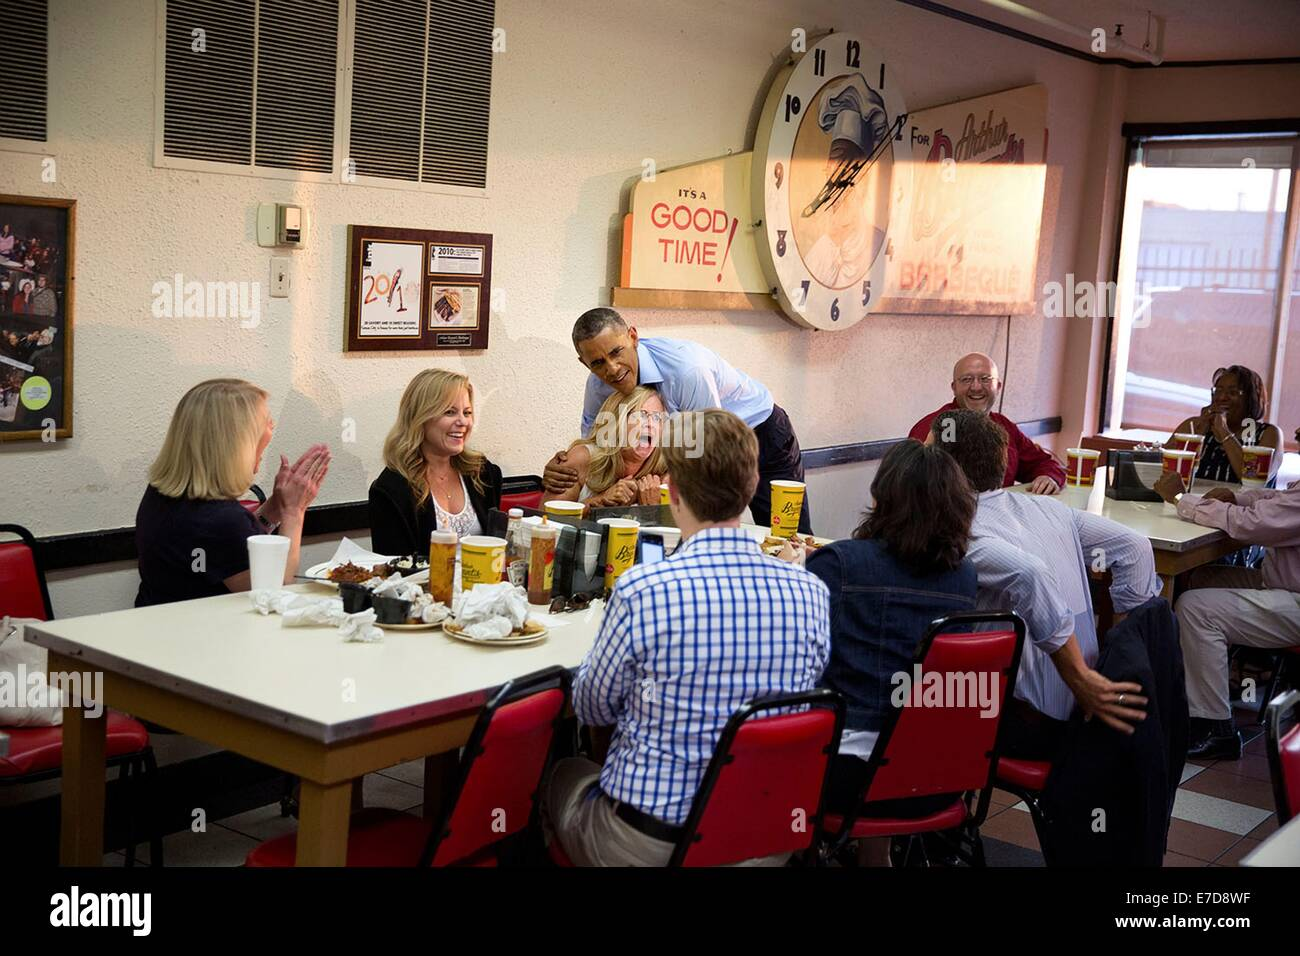 US President Barack Obama Jokes With Restaurant Patrons At Arthur Bryants Barbecue July 29 2014